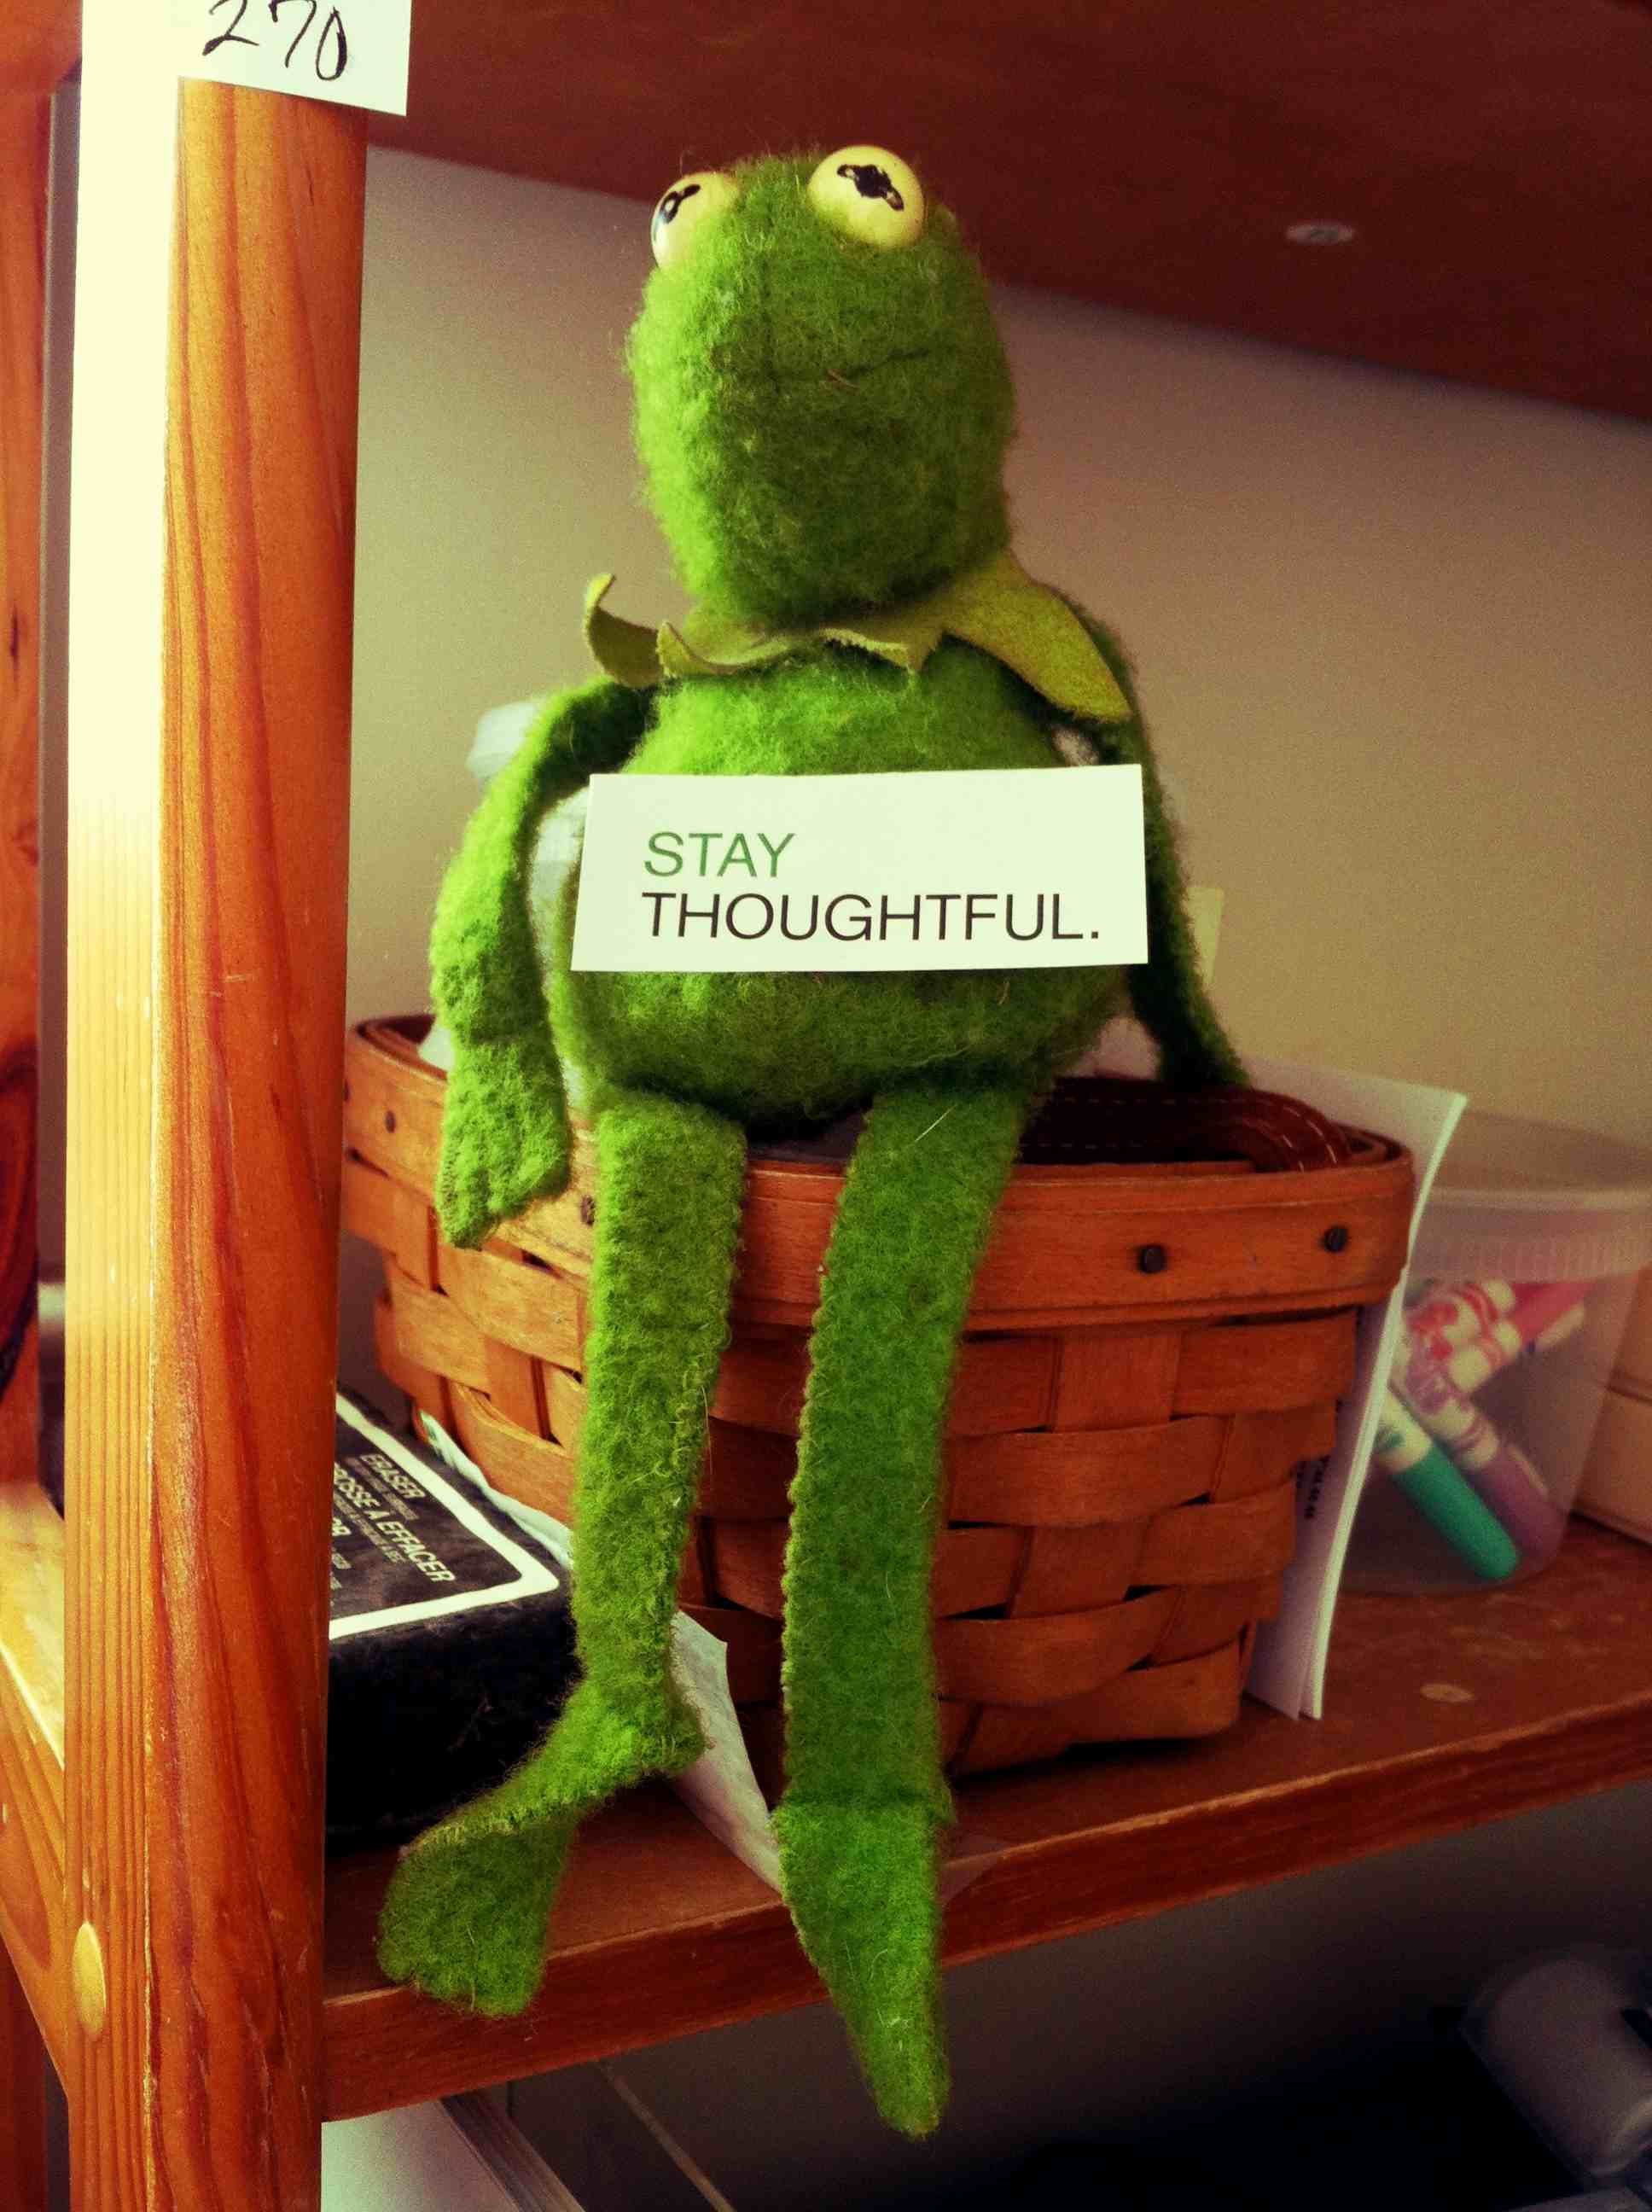 We keep Kermit in our office with this little sign taped to his belly: 'Stay Thoughtful.'  What might at first seem like failure is often just an opportunity to learn, or improve.  Plus, we just like the Muppets.